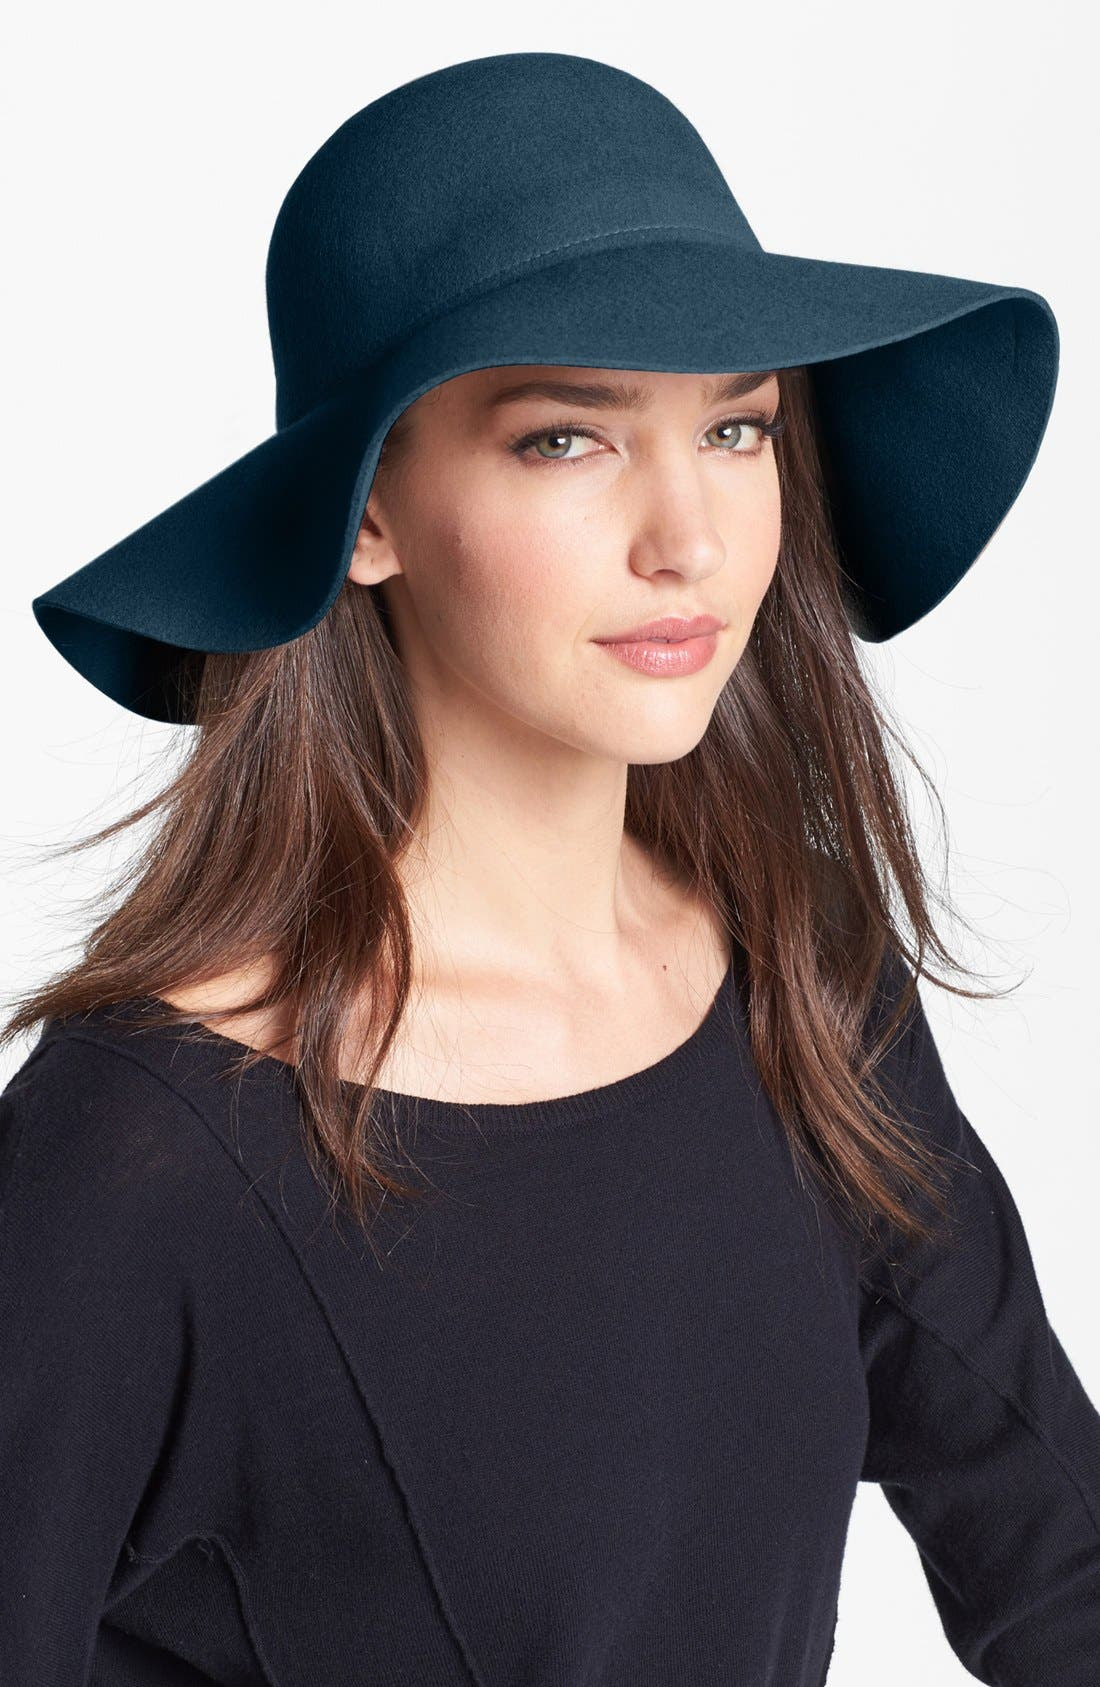 Alternate Image 1 Selected - Nordstrom Wool Felt Floppy Brim Hat